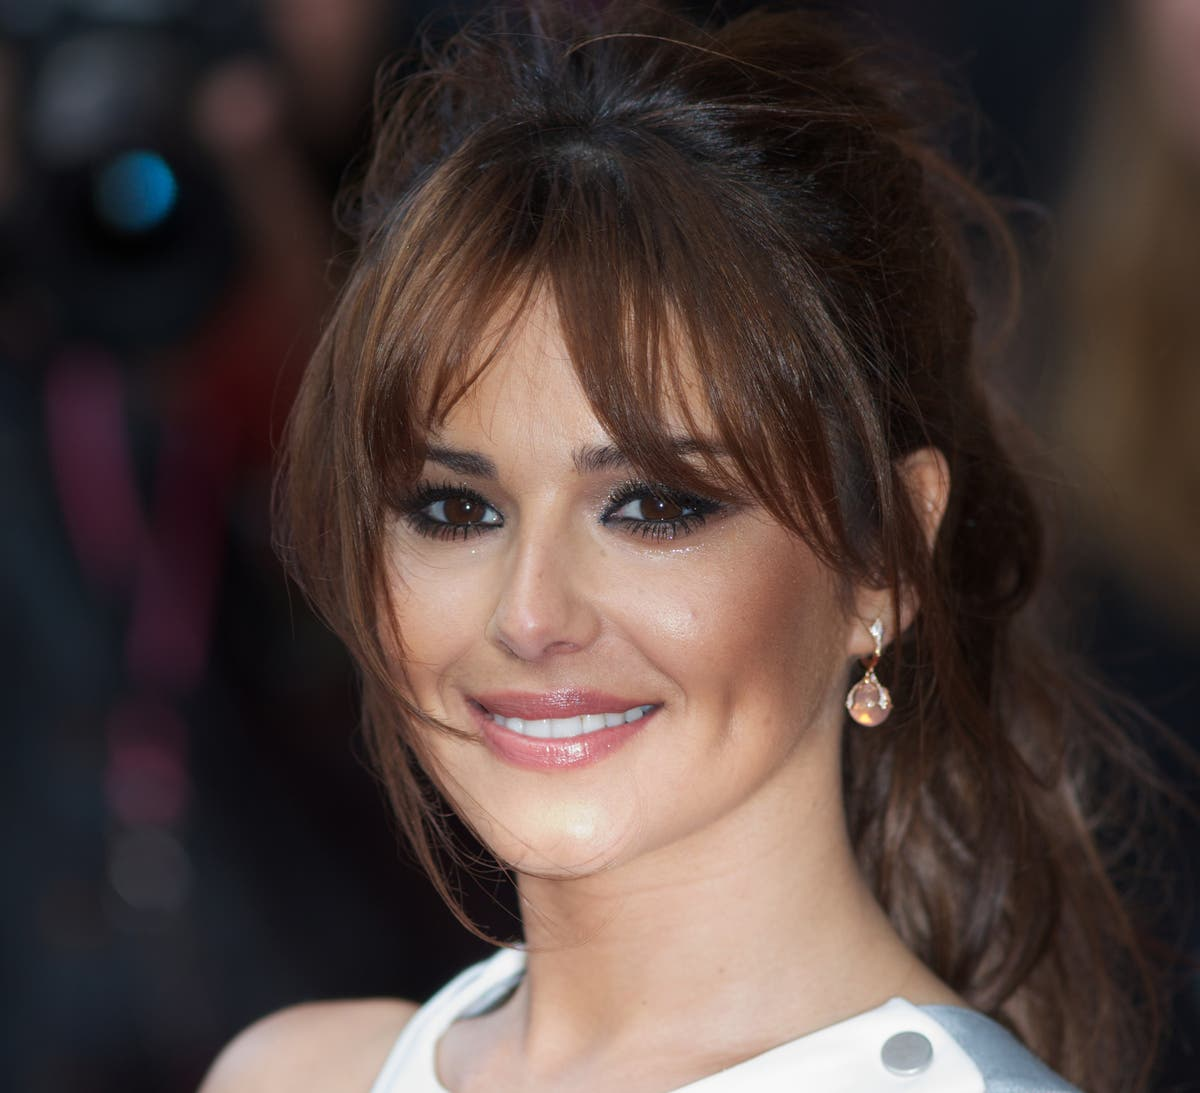 Cheryl Cole Reaches Settlement Over Us X Factor Sacking The Independent The Independent